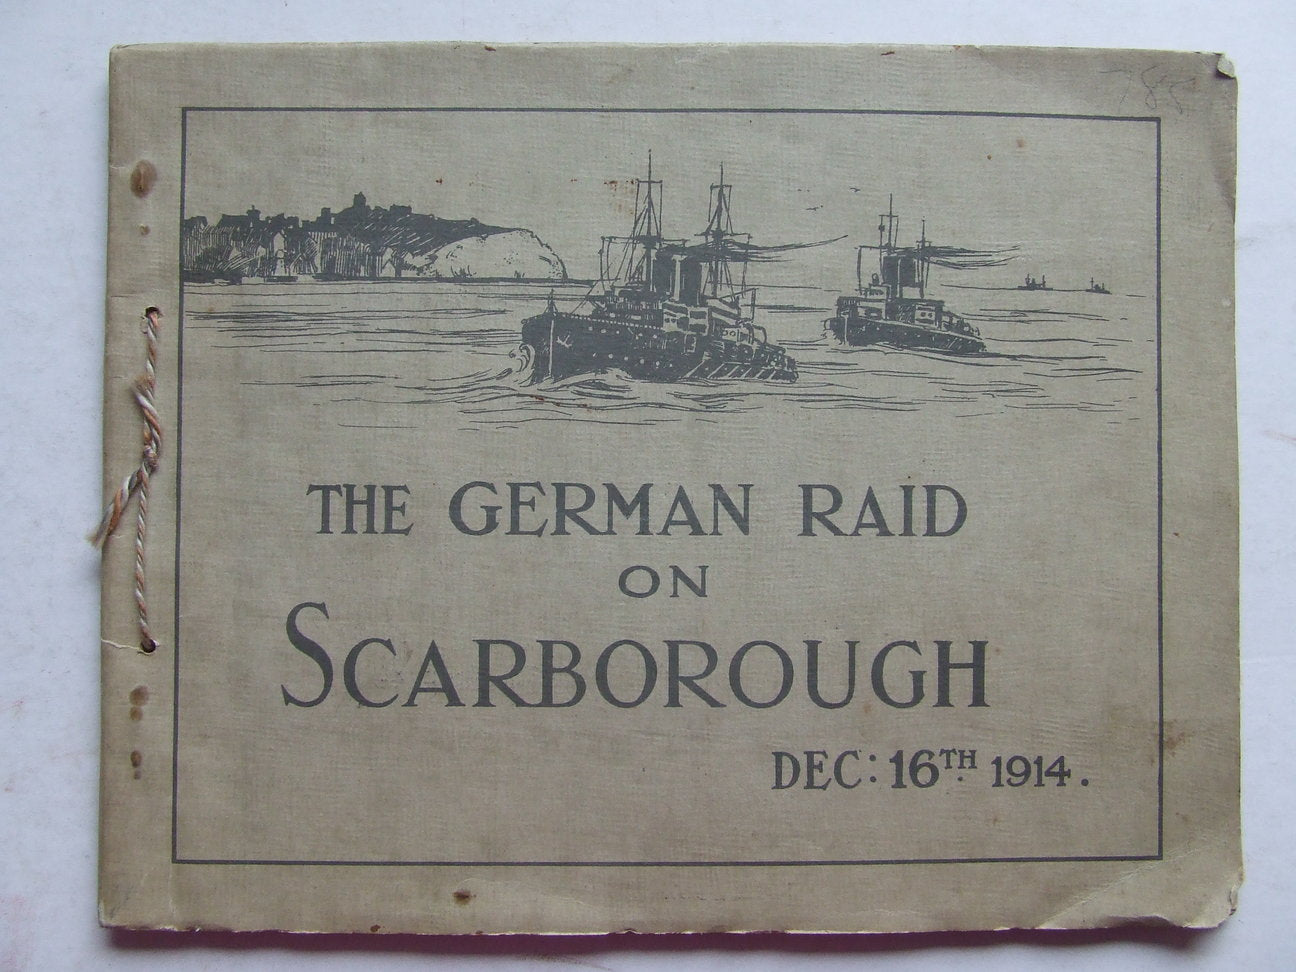 German Raid on Scarborough, December 16th 1914